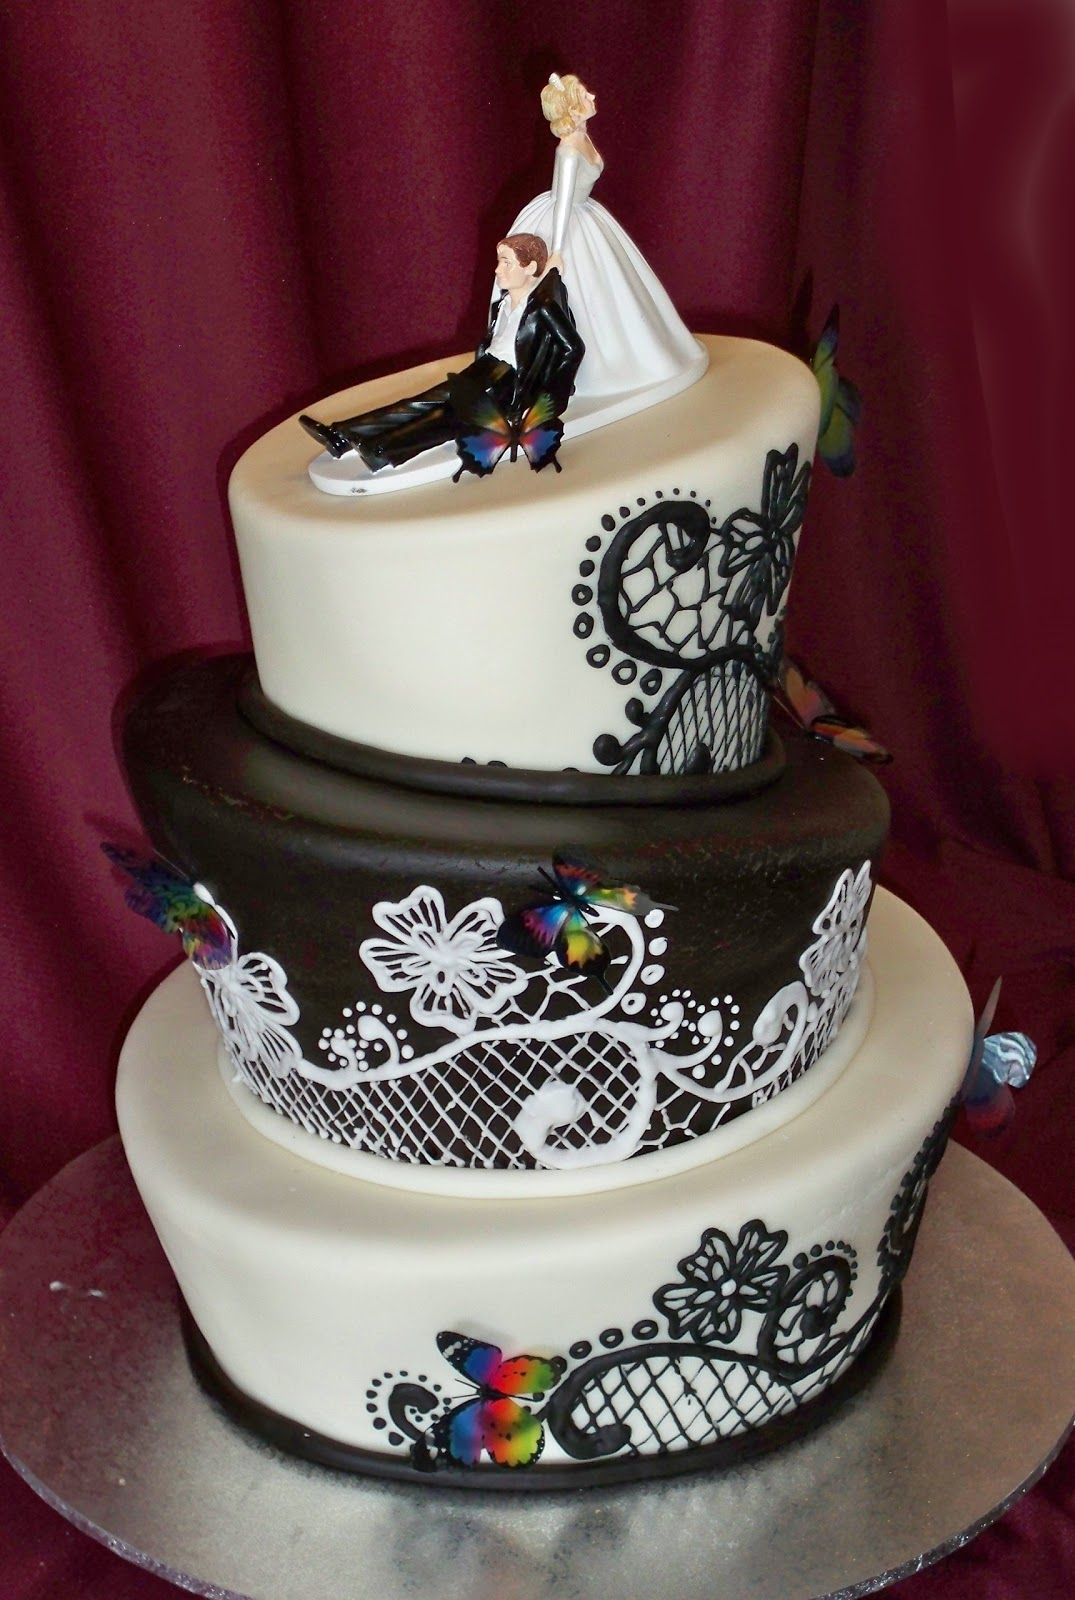 Cake Design Images Hd : elegant black and white topsy turvy wedding cake with ...